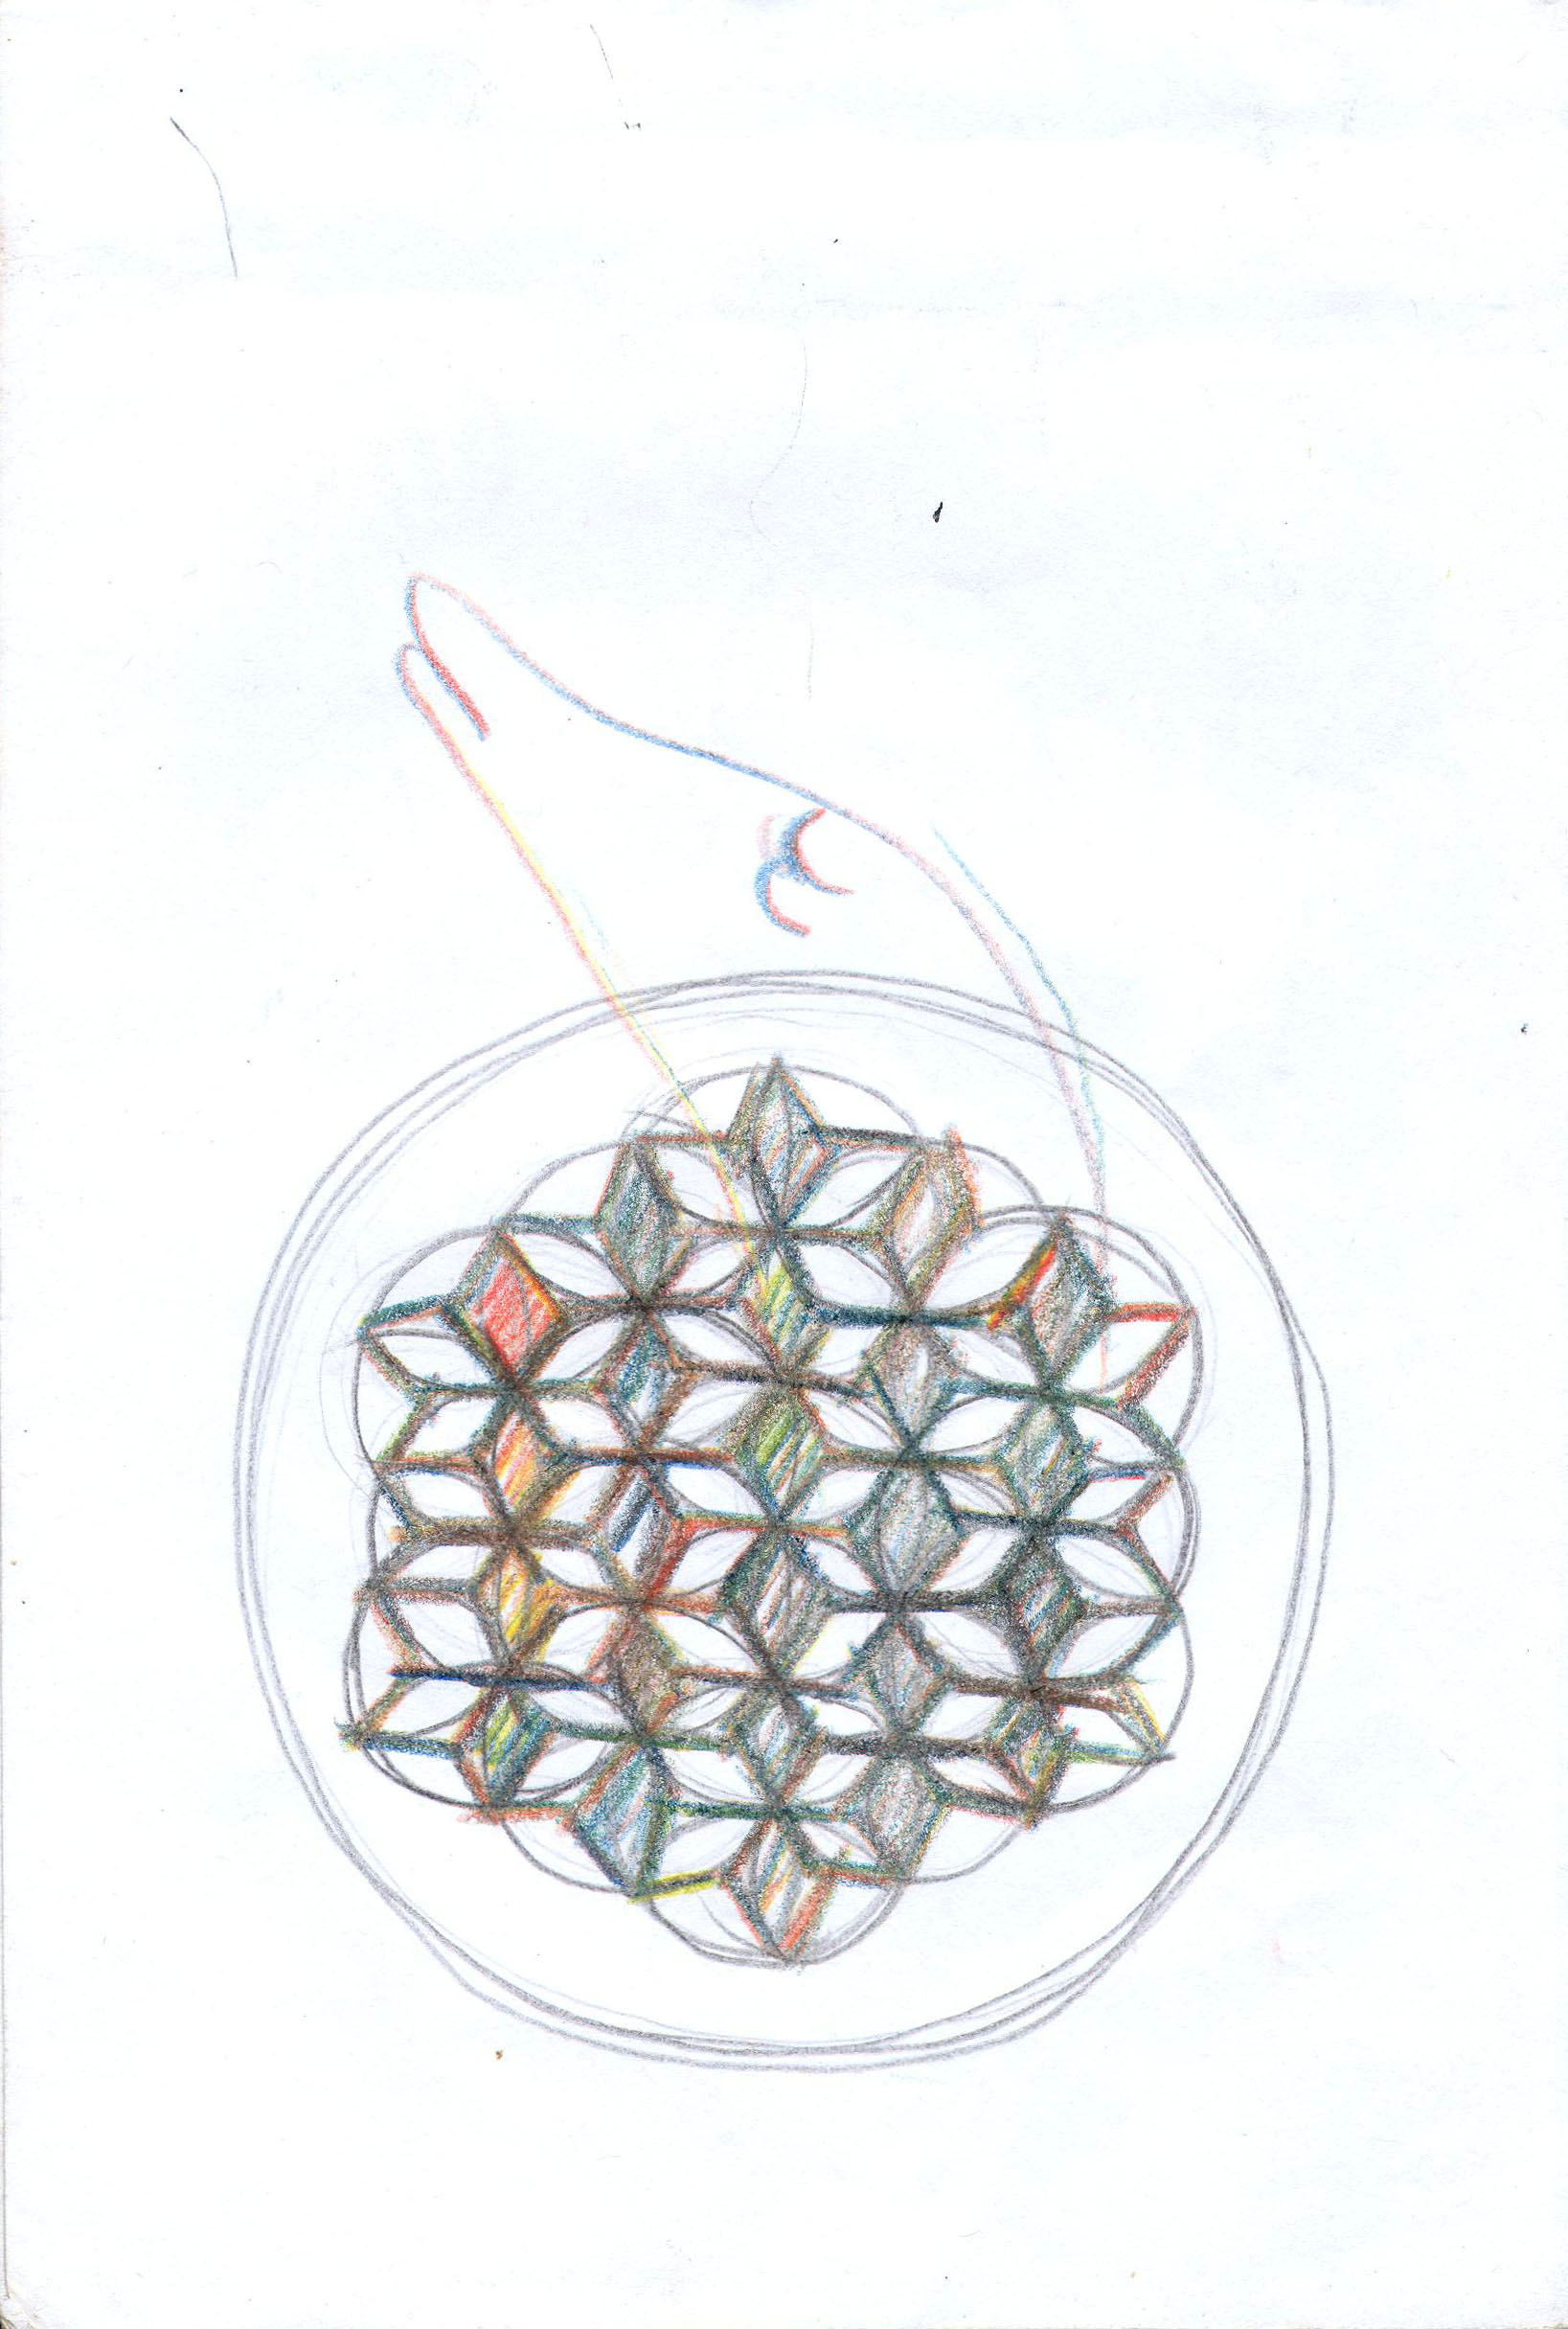 Sketches from the source by a Philippine shaman Bong Delatorre 53